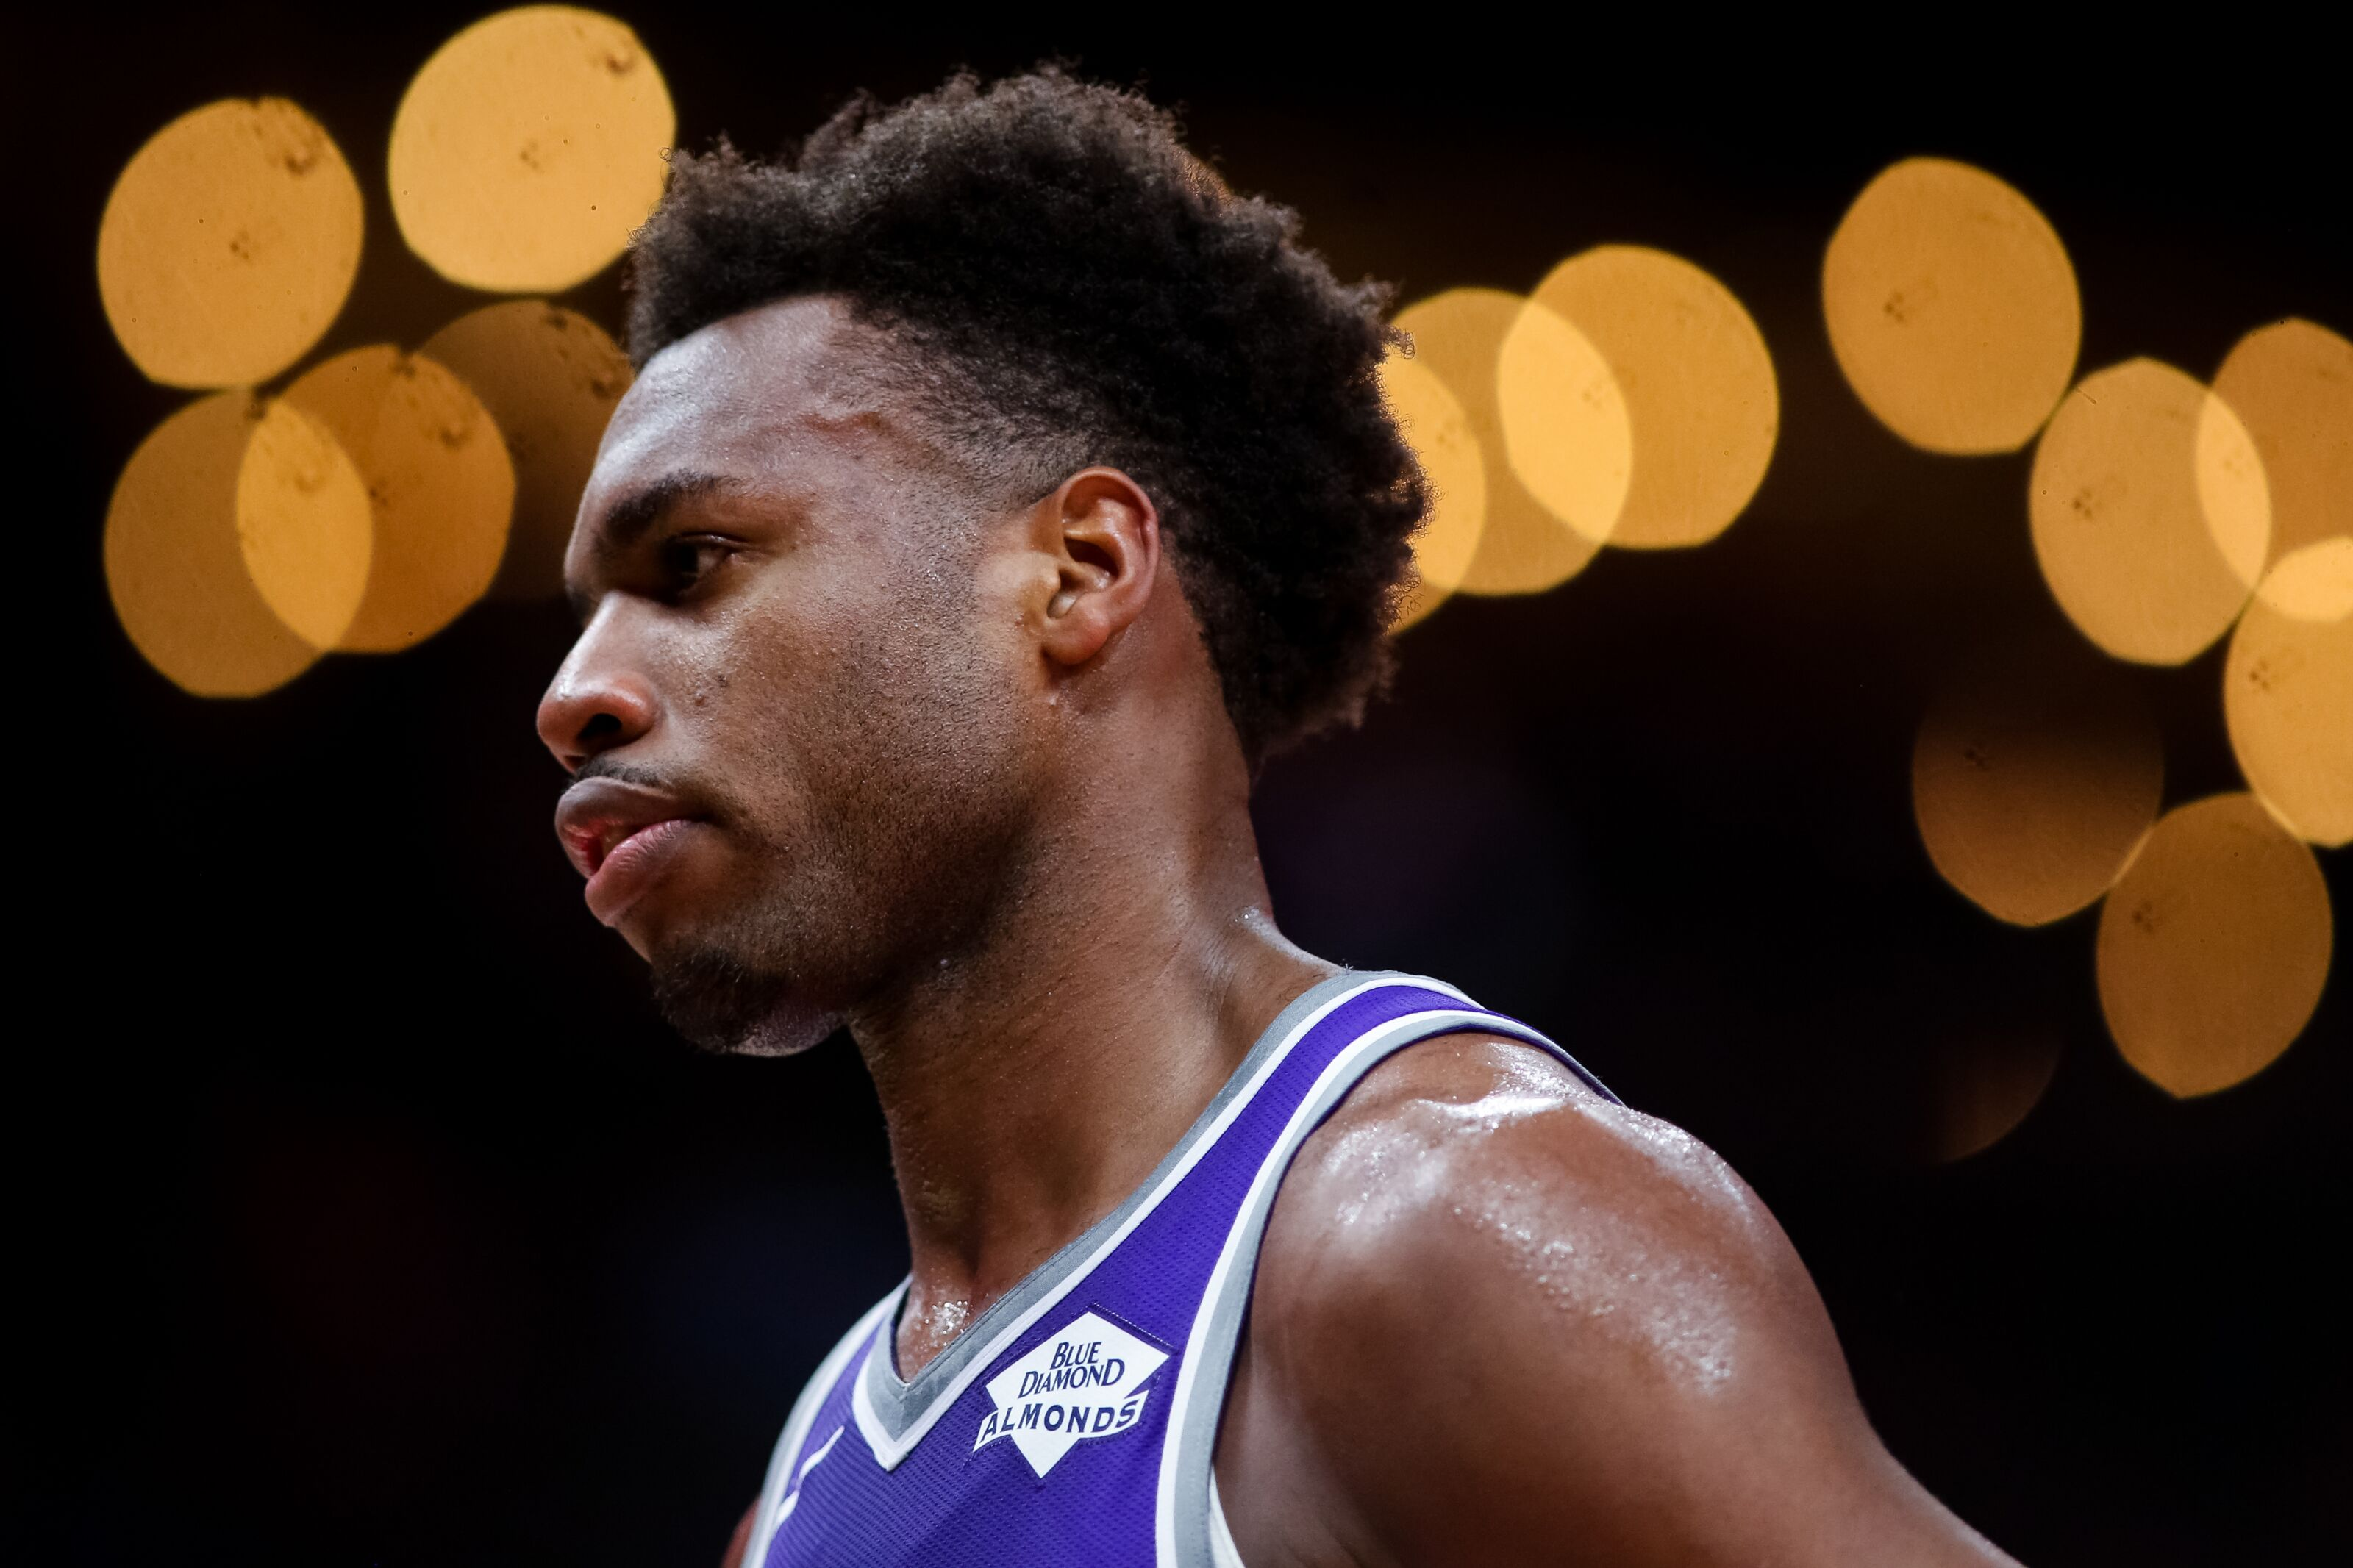 Hield's Poor Decision Making A Factor In Loss To Lakers